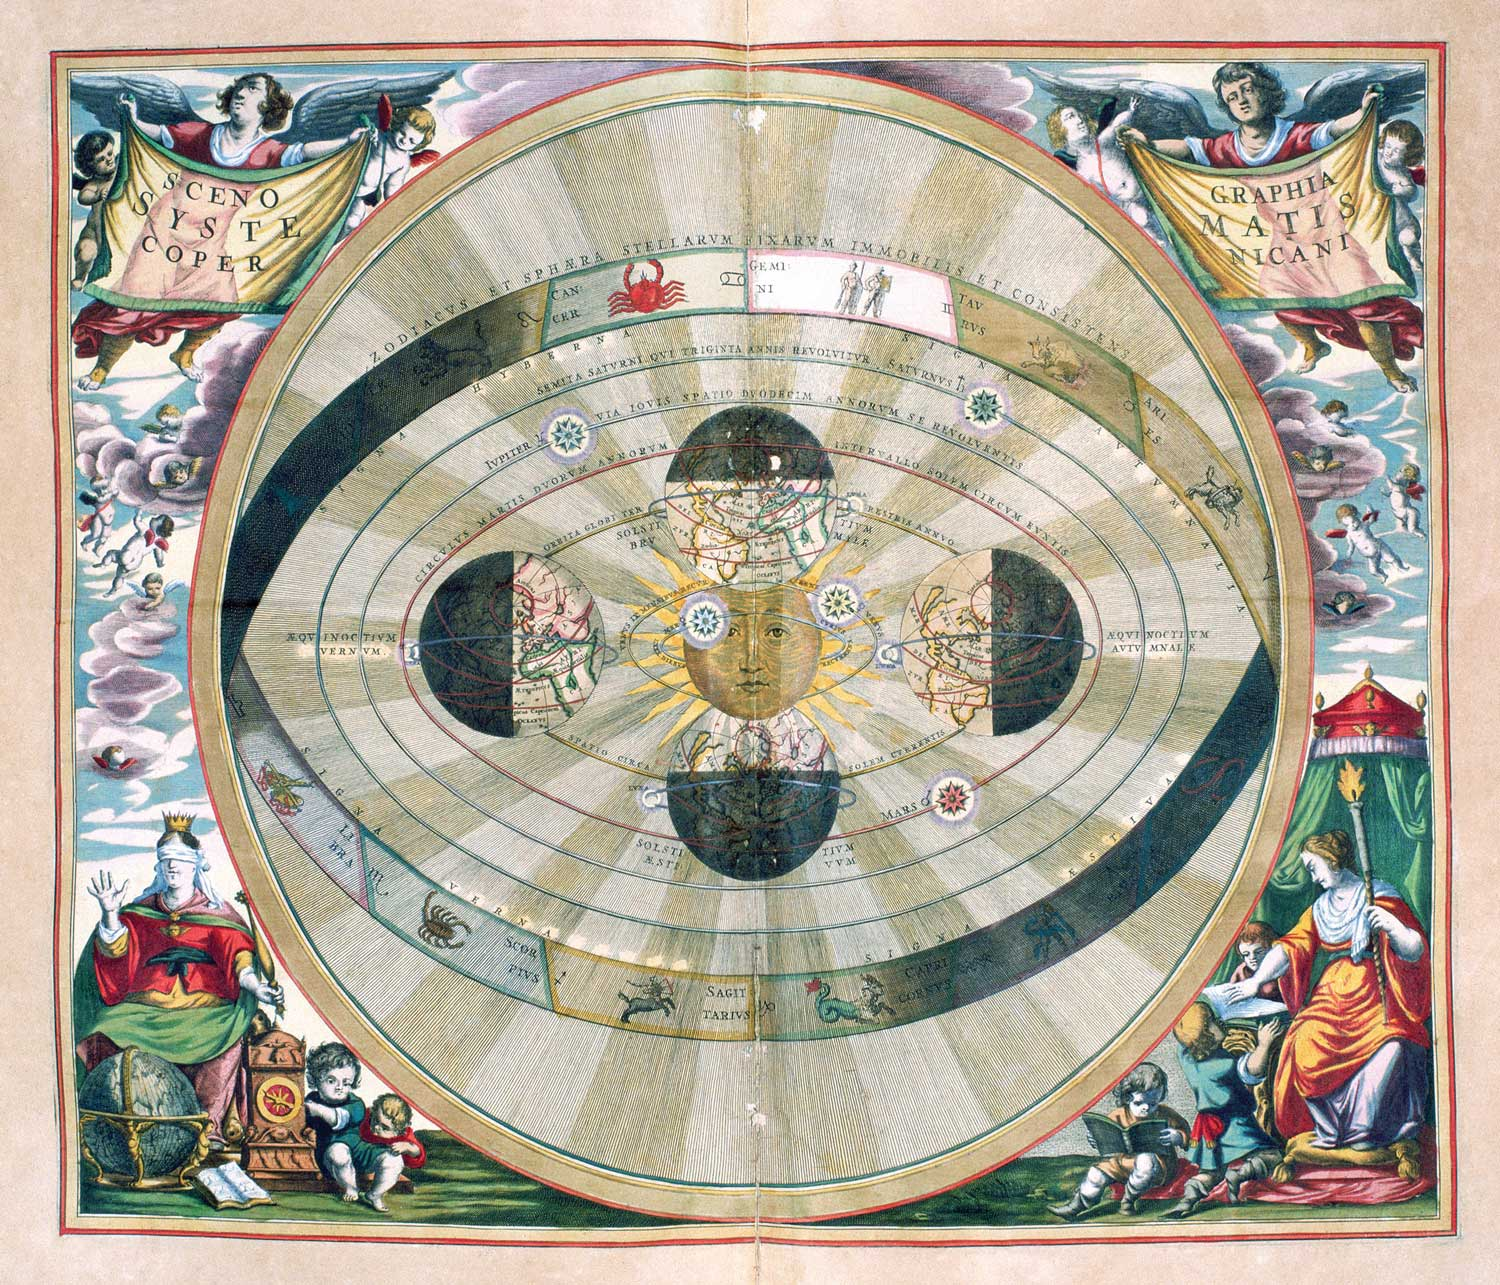 Engraving of the Copernican Solar System by Andreas Cellarius (1661); heliocentric, with the sun at the center of the solar system